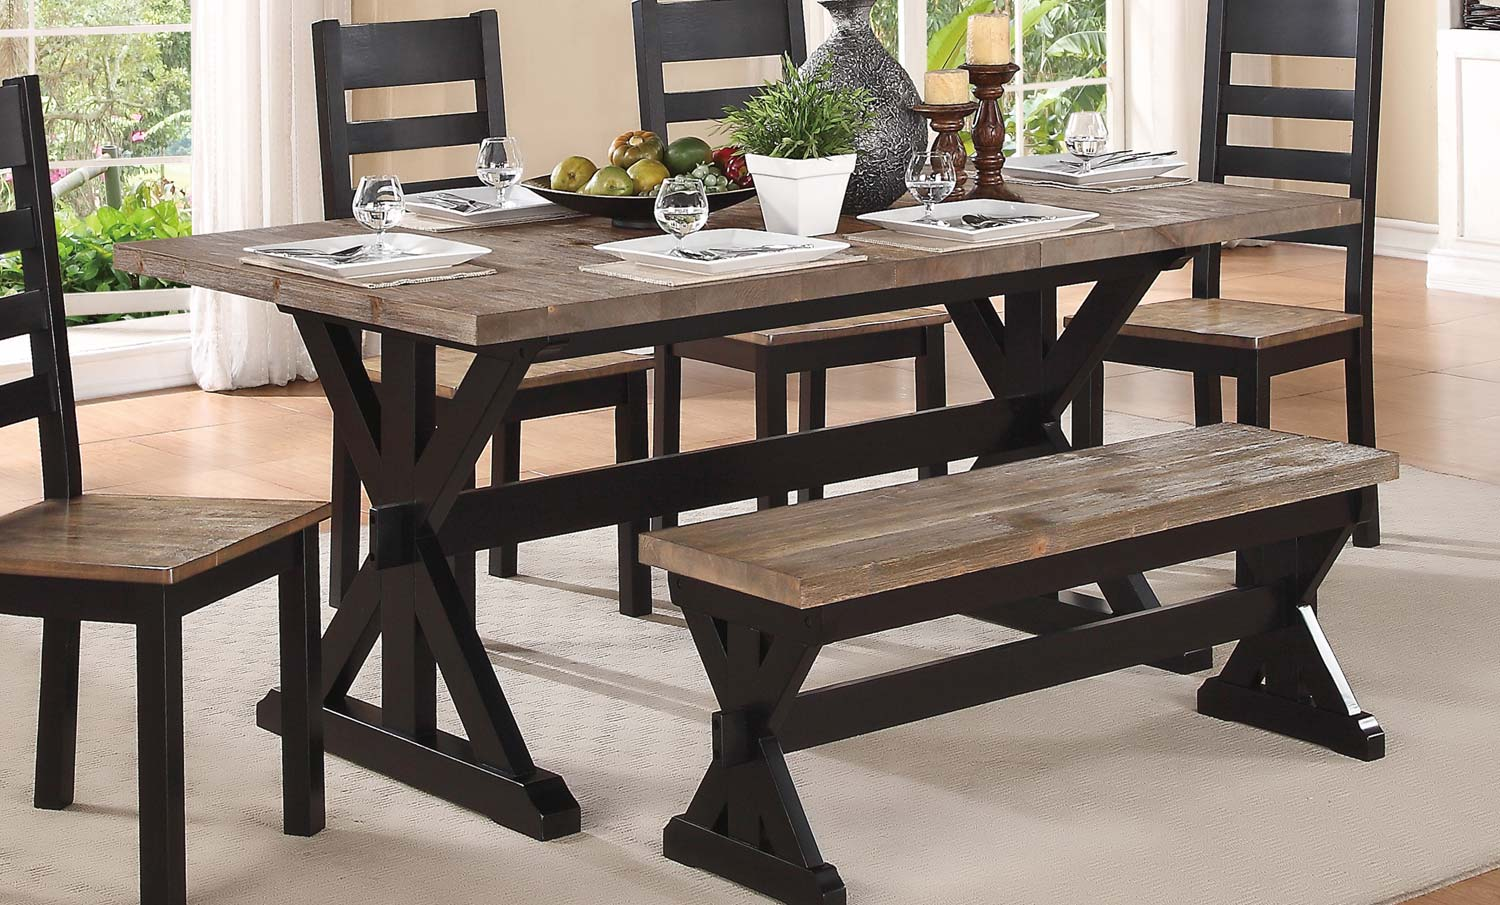 Homelegance North Port Trestle Dining Table   Two Tone Black/Brown